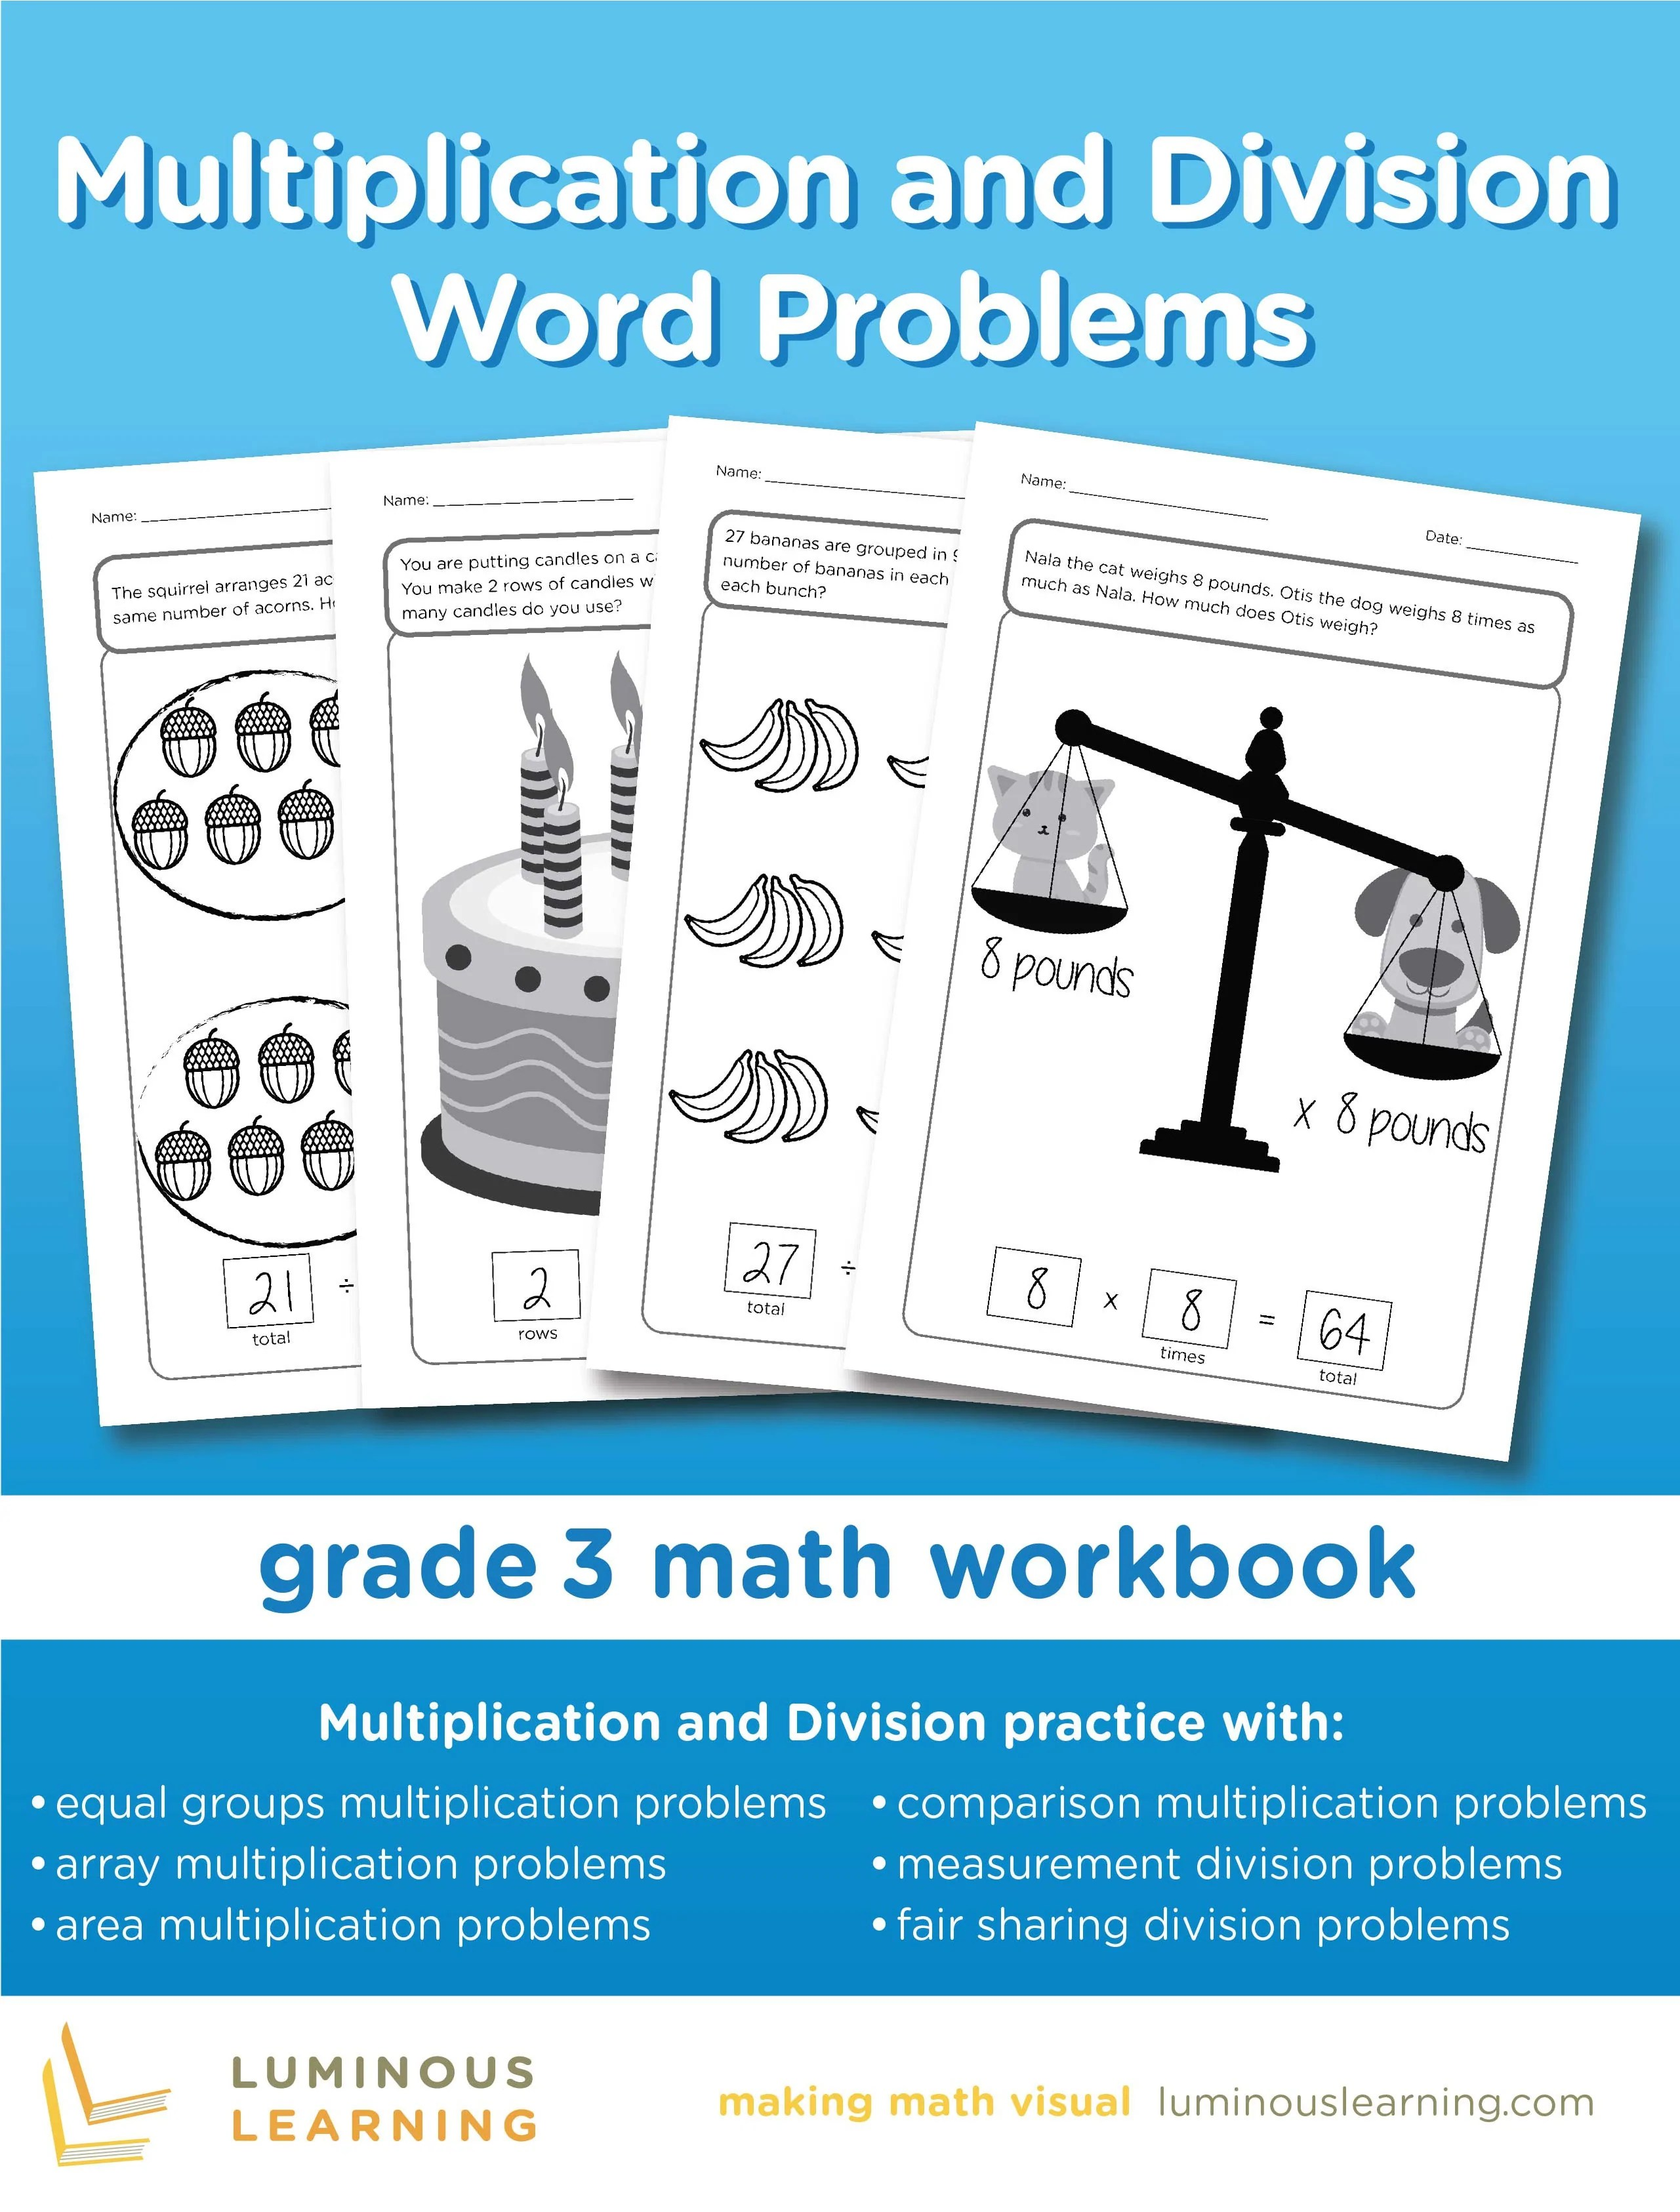 hight resolution of Multiplication and Division Word Problems - Grade 3 Math Workbook: Mak